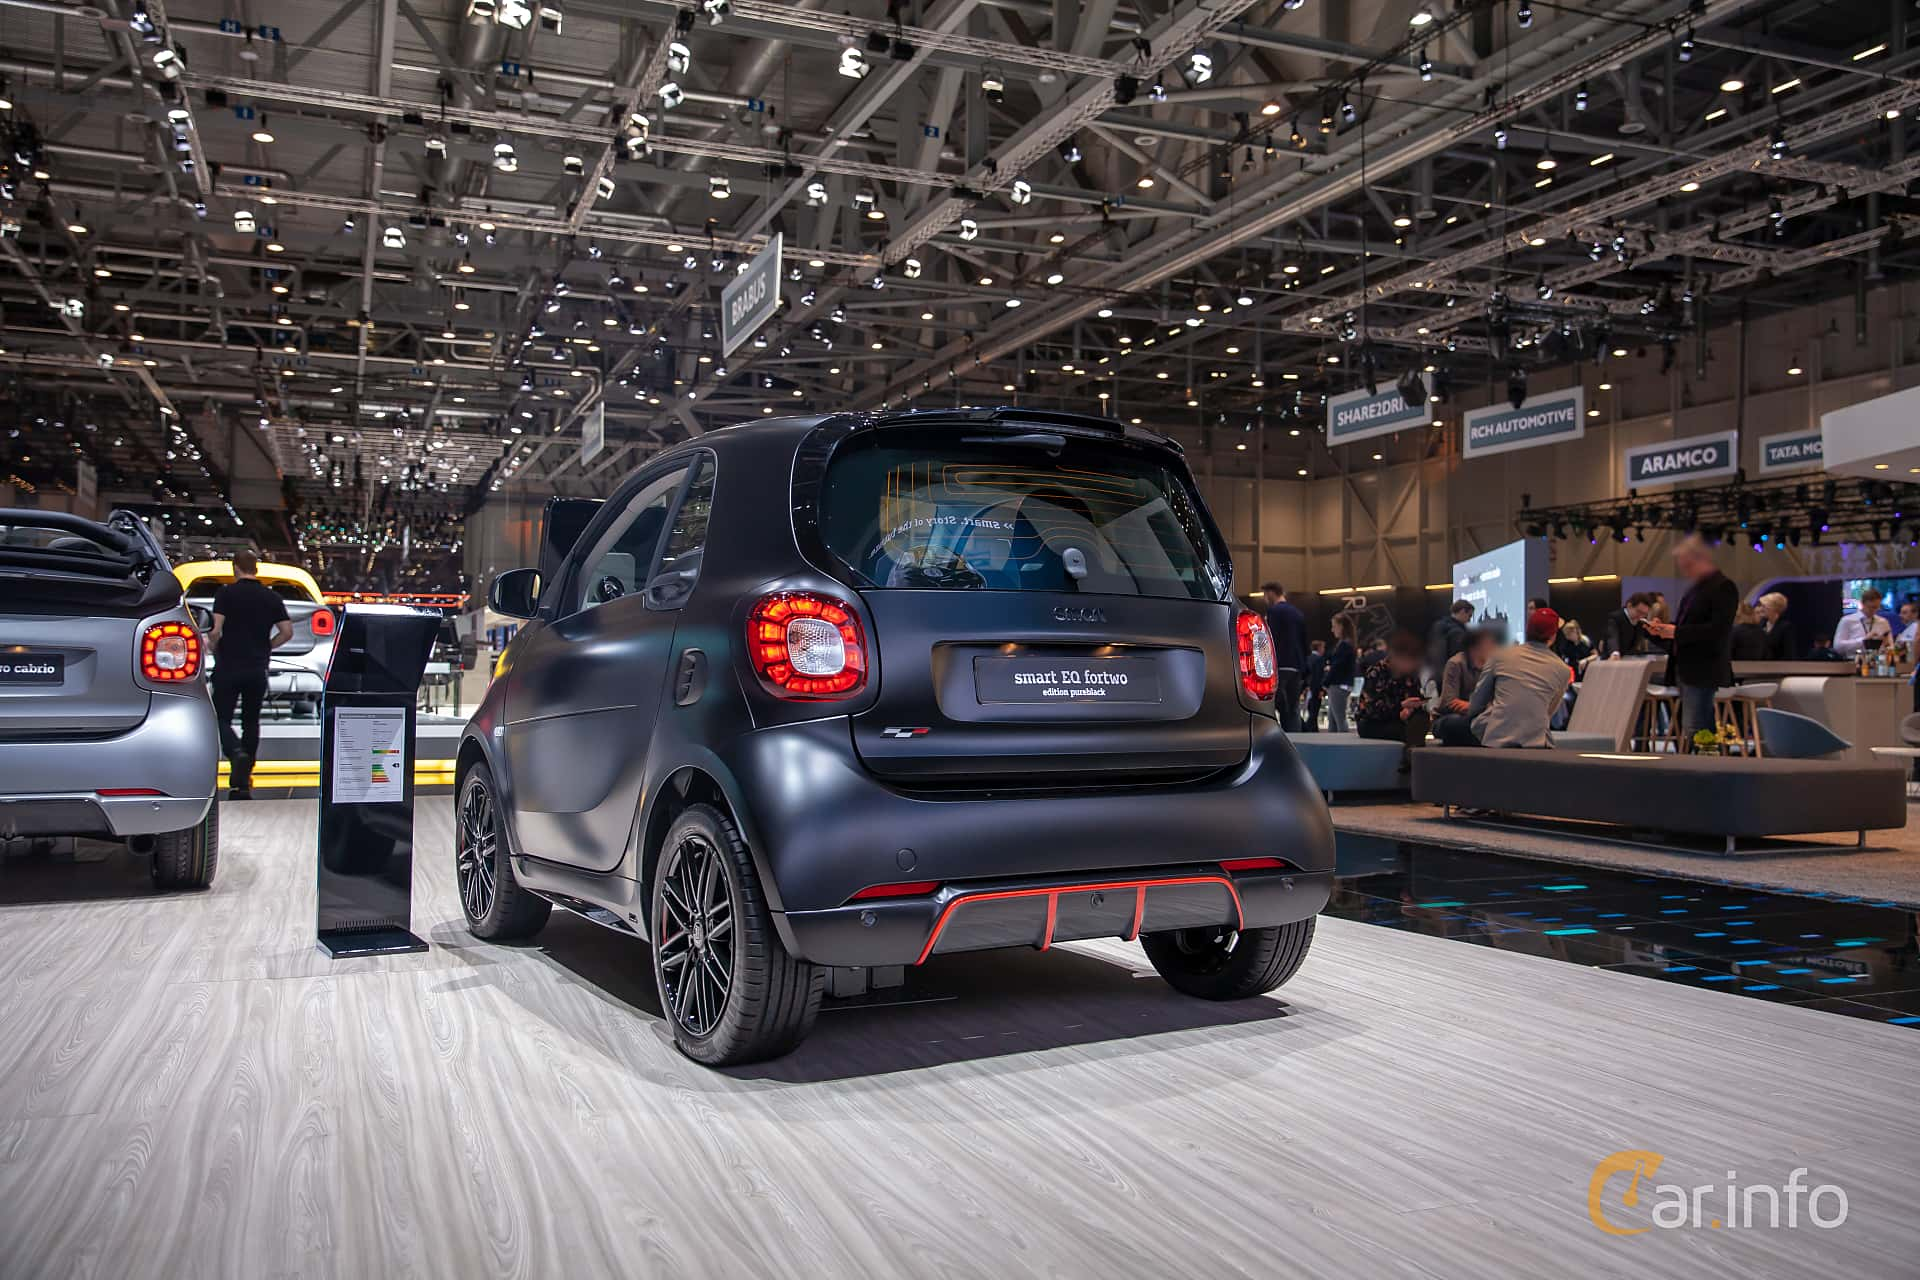 Smart fortwo electric drive 17.6 kWh Single Speed, 82hp, 2019 at Geneva Motor Show 2019